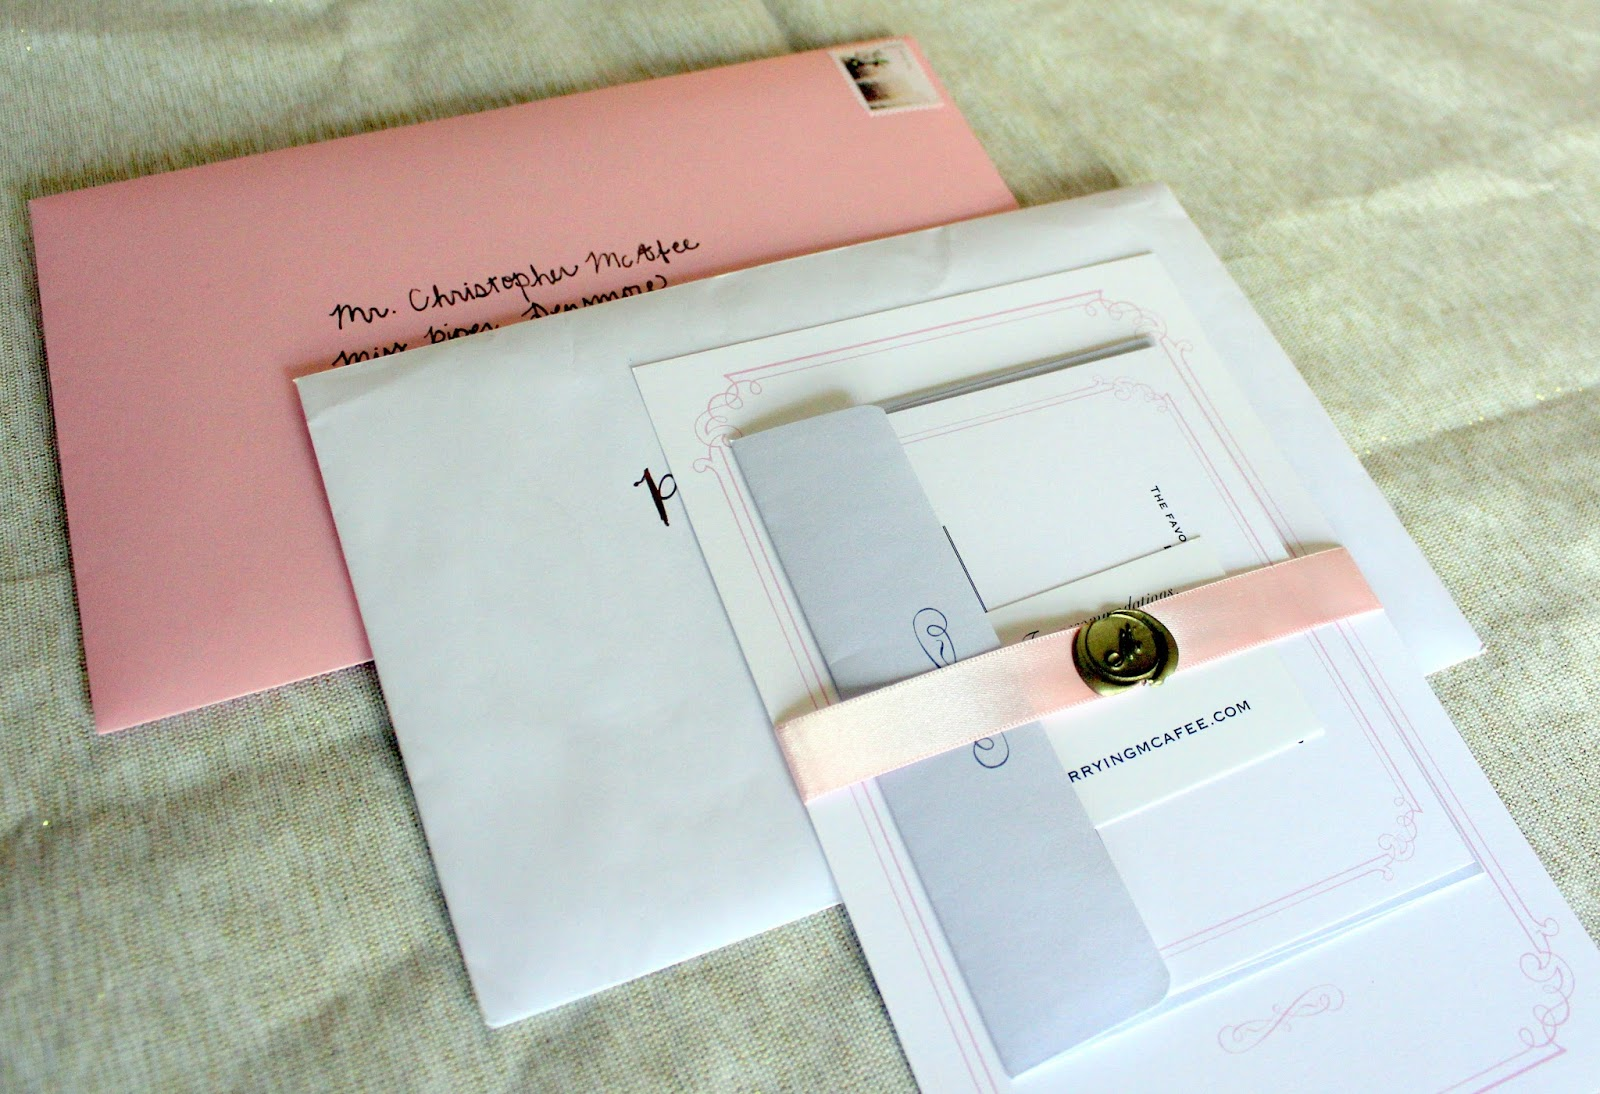 I Loved How Vistaprint Has Pre Designed Complimentary Pieces For The RSVP  Card, The Wedding Program, And More. We Had The Invitation, The RSVP Card  And ...